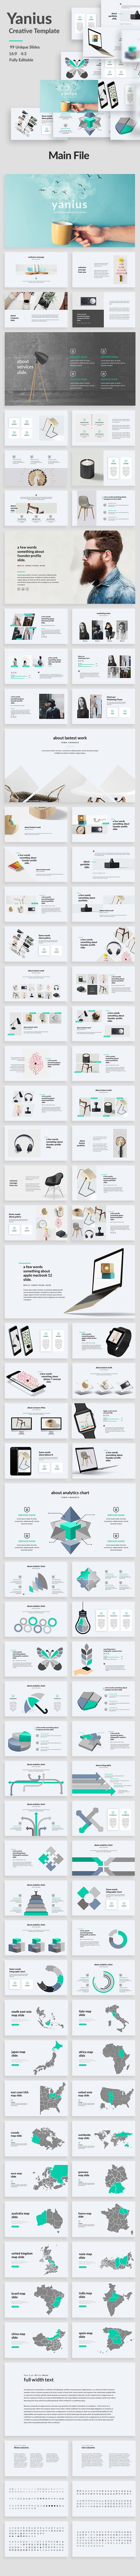 Yanius - Creative Google Slide Template - #Google Slides #Presentation Templates Download here: https://graphicriver.net/item/yanius-creative-google-slide-template/19958624?ref=alena994